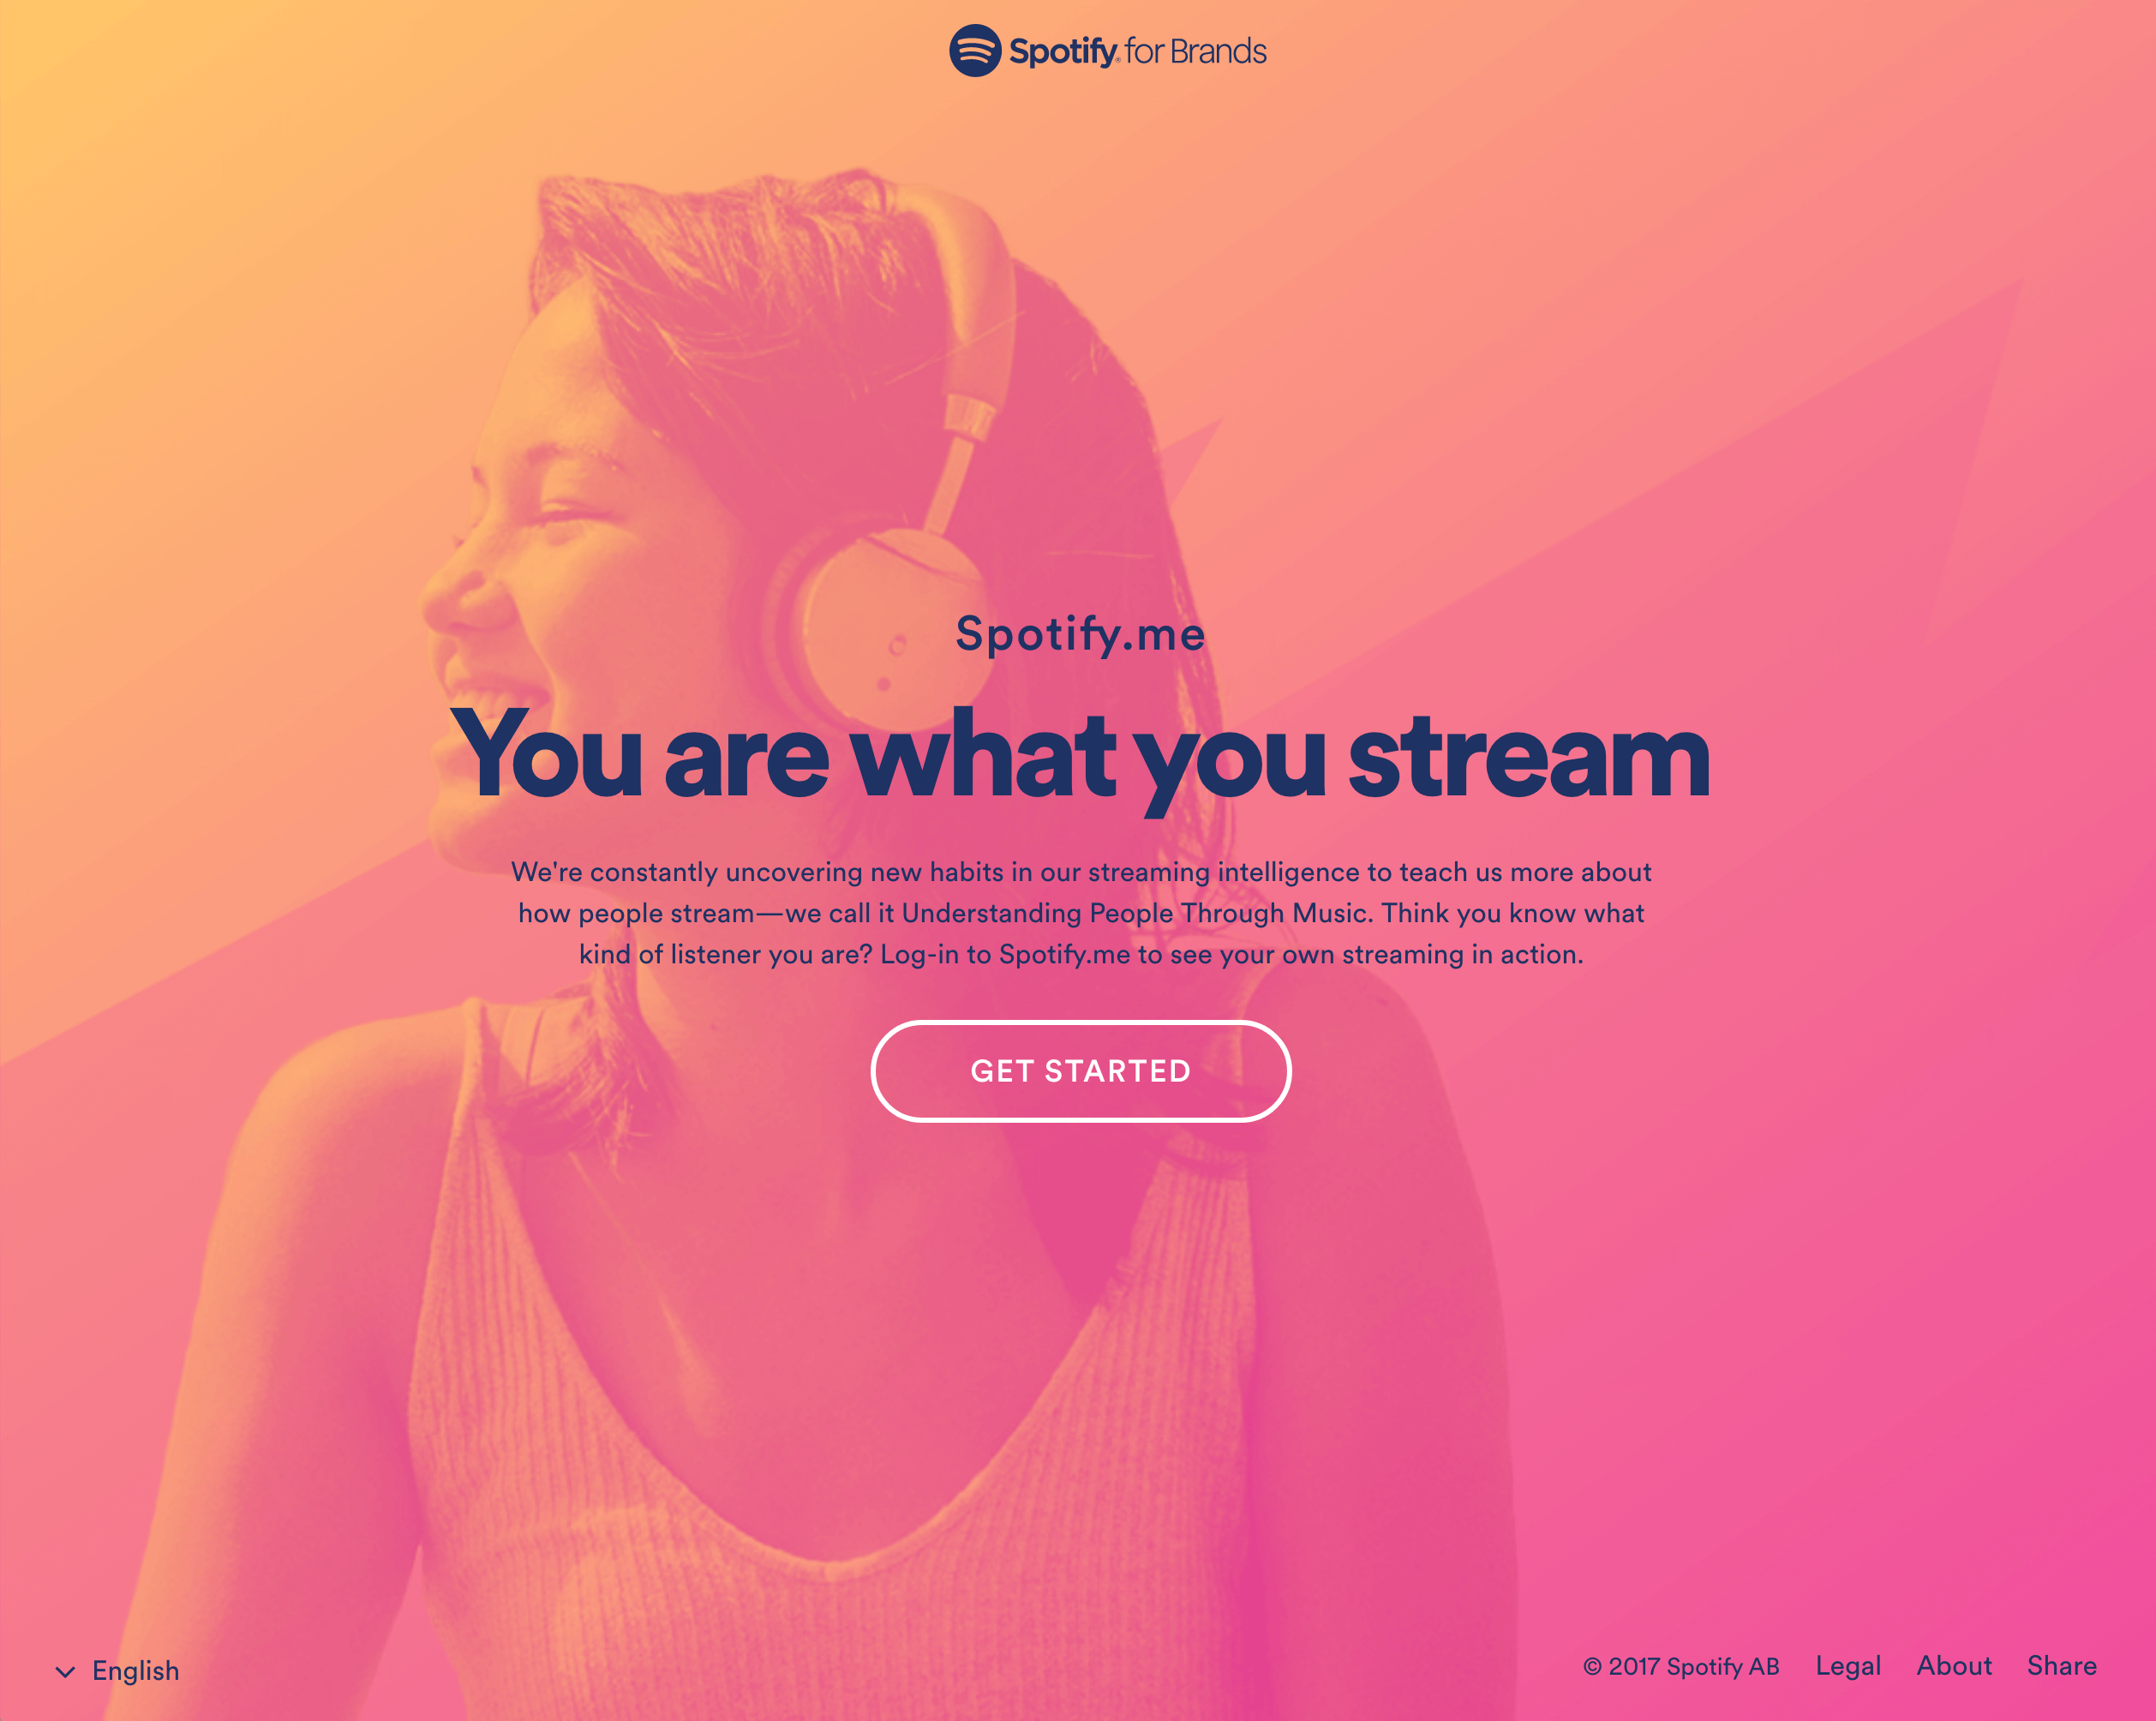 Example of a gradient effect in Spotify's design